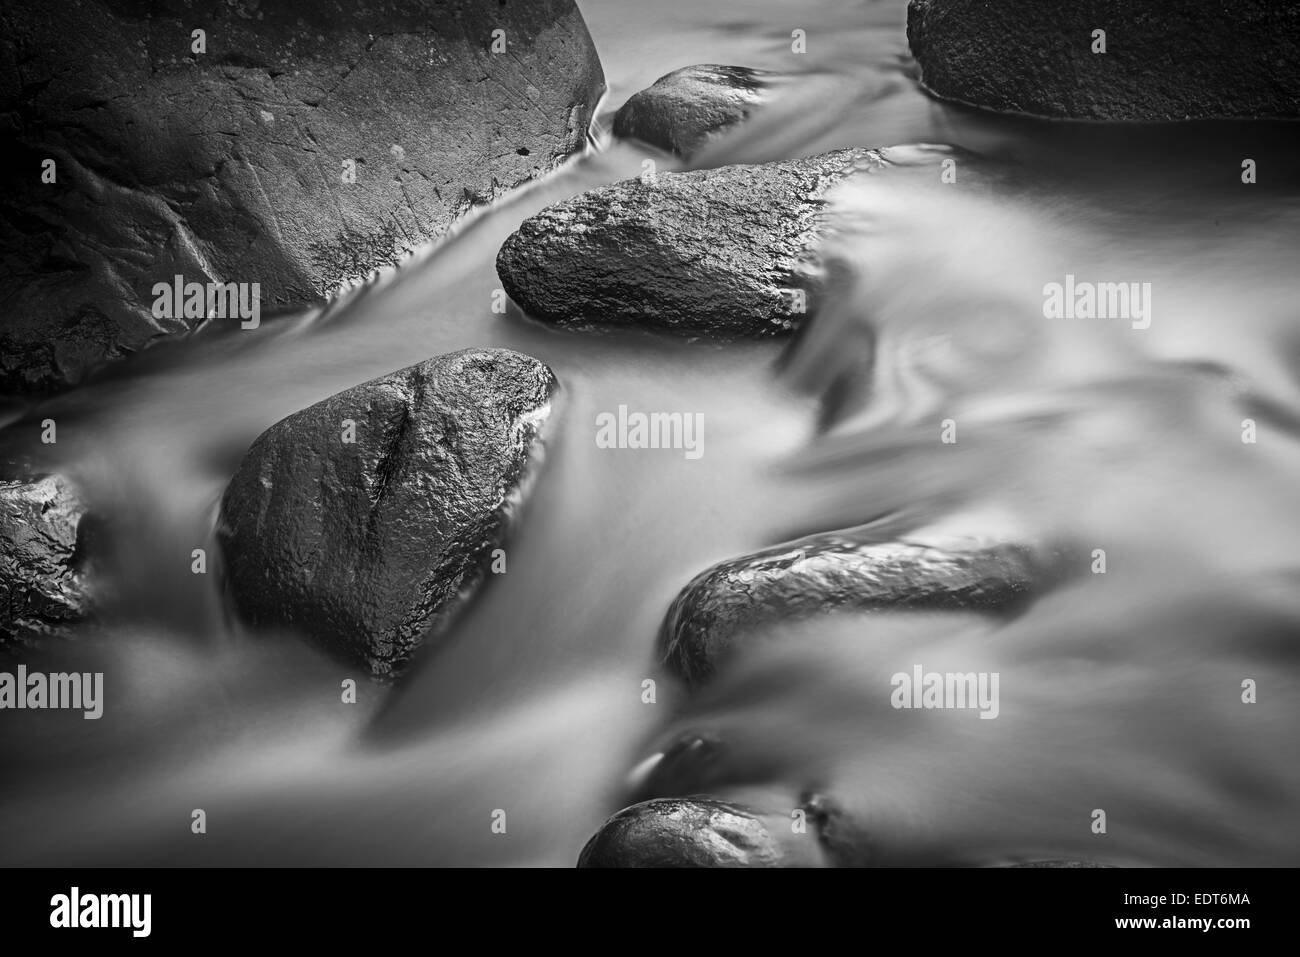 L'eau qui coule & Rocks dans le ruisseau Black & White Photo Stock